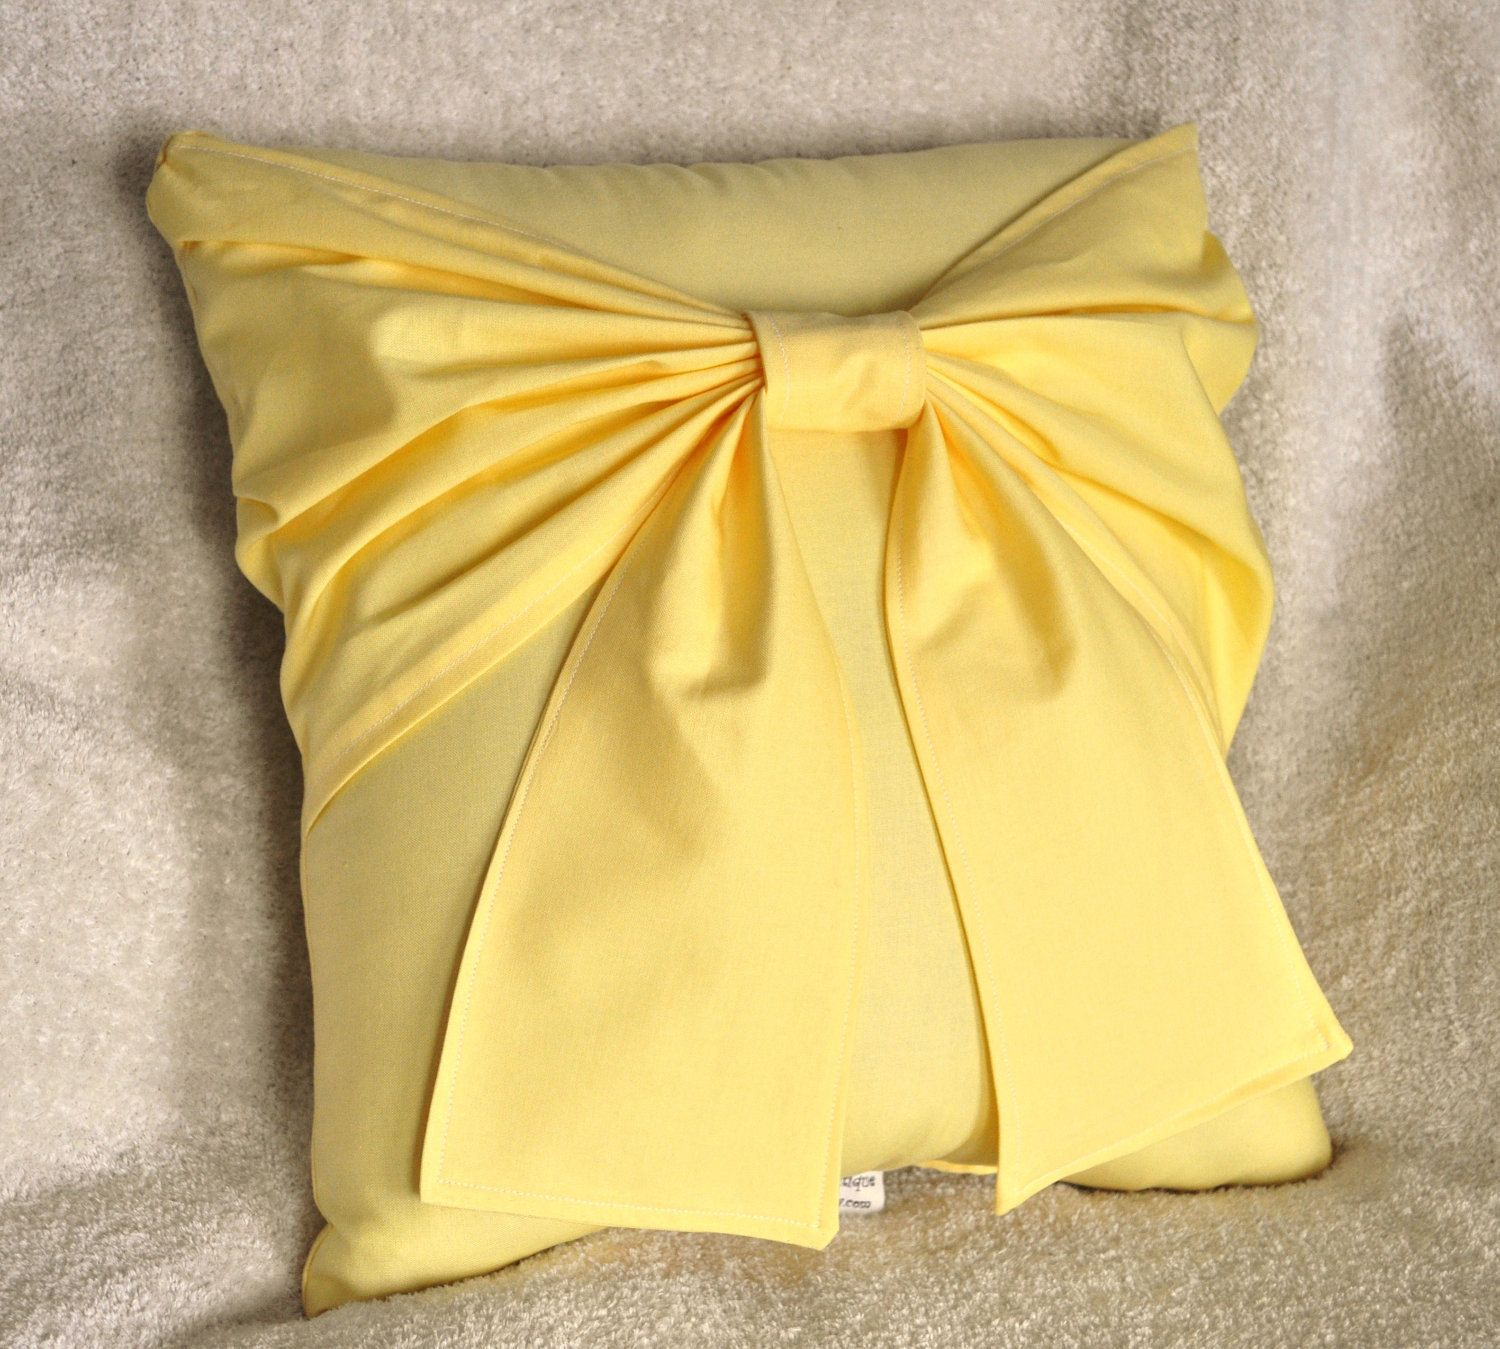 yellow teal gold x pillow of sequin g pillows designs size accent throw bedroom divine grey gray full mustard cover design blue decorative